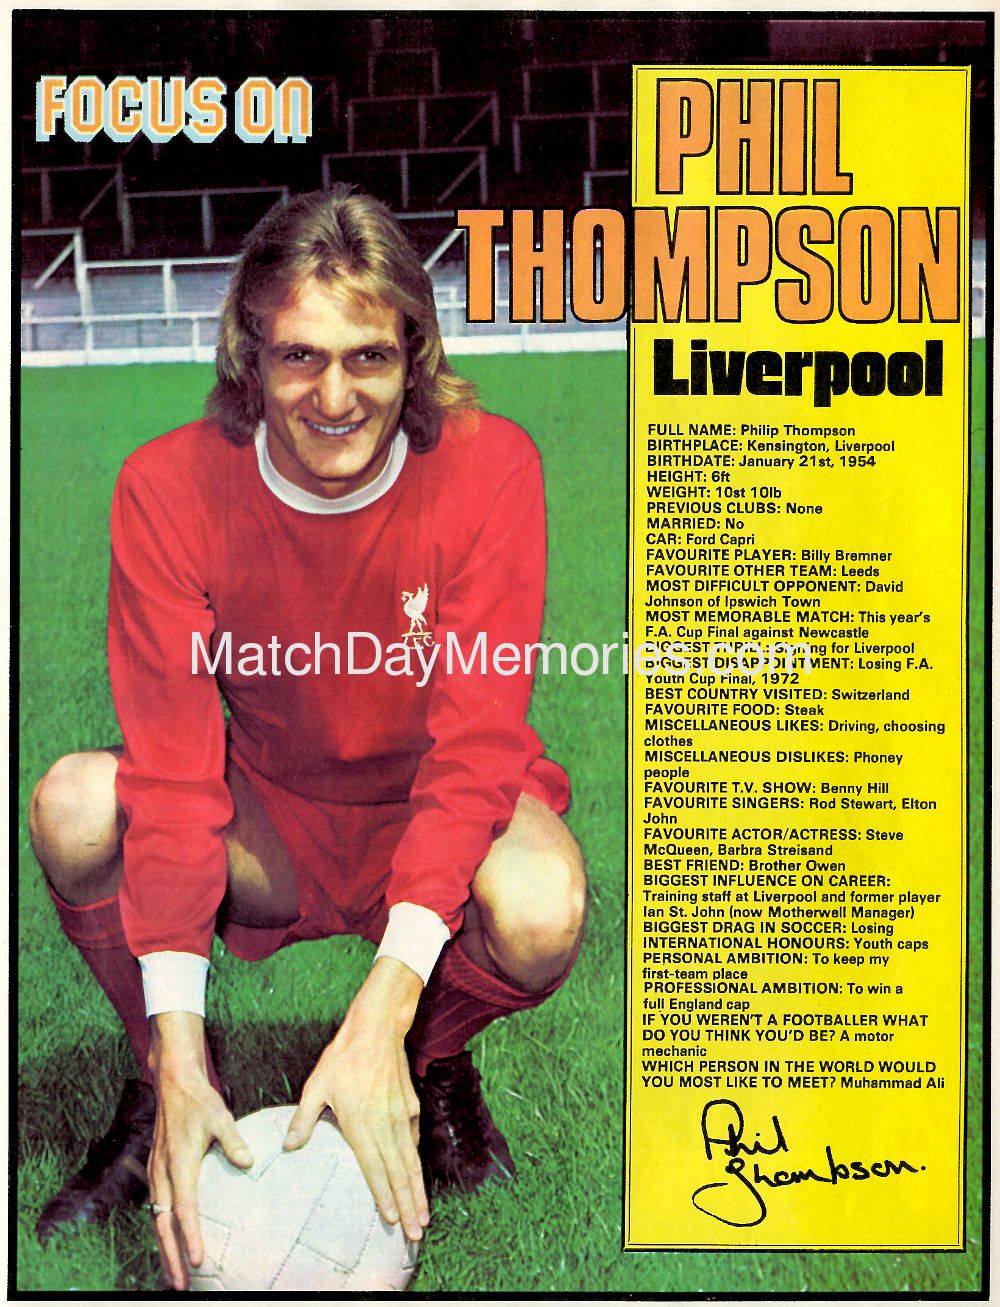 Focus on Phil Thompson